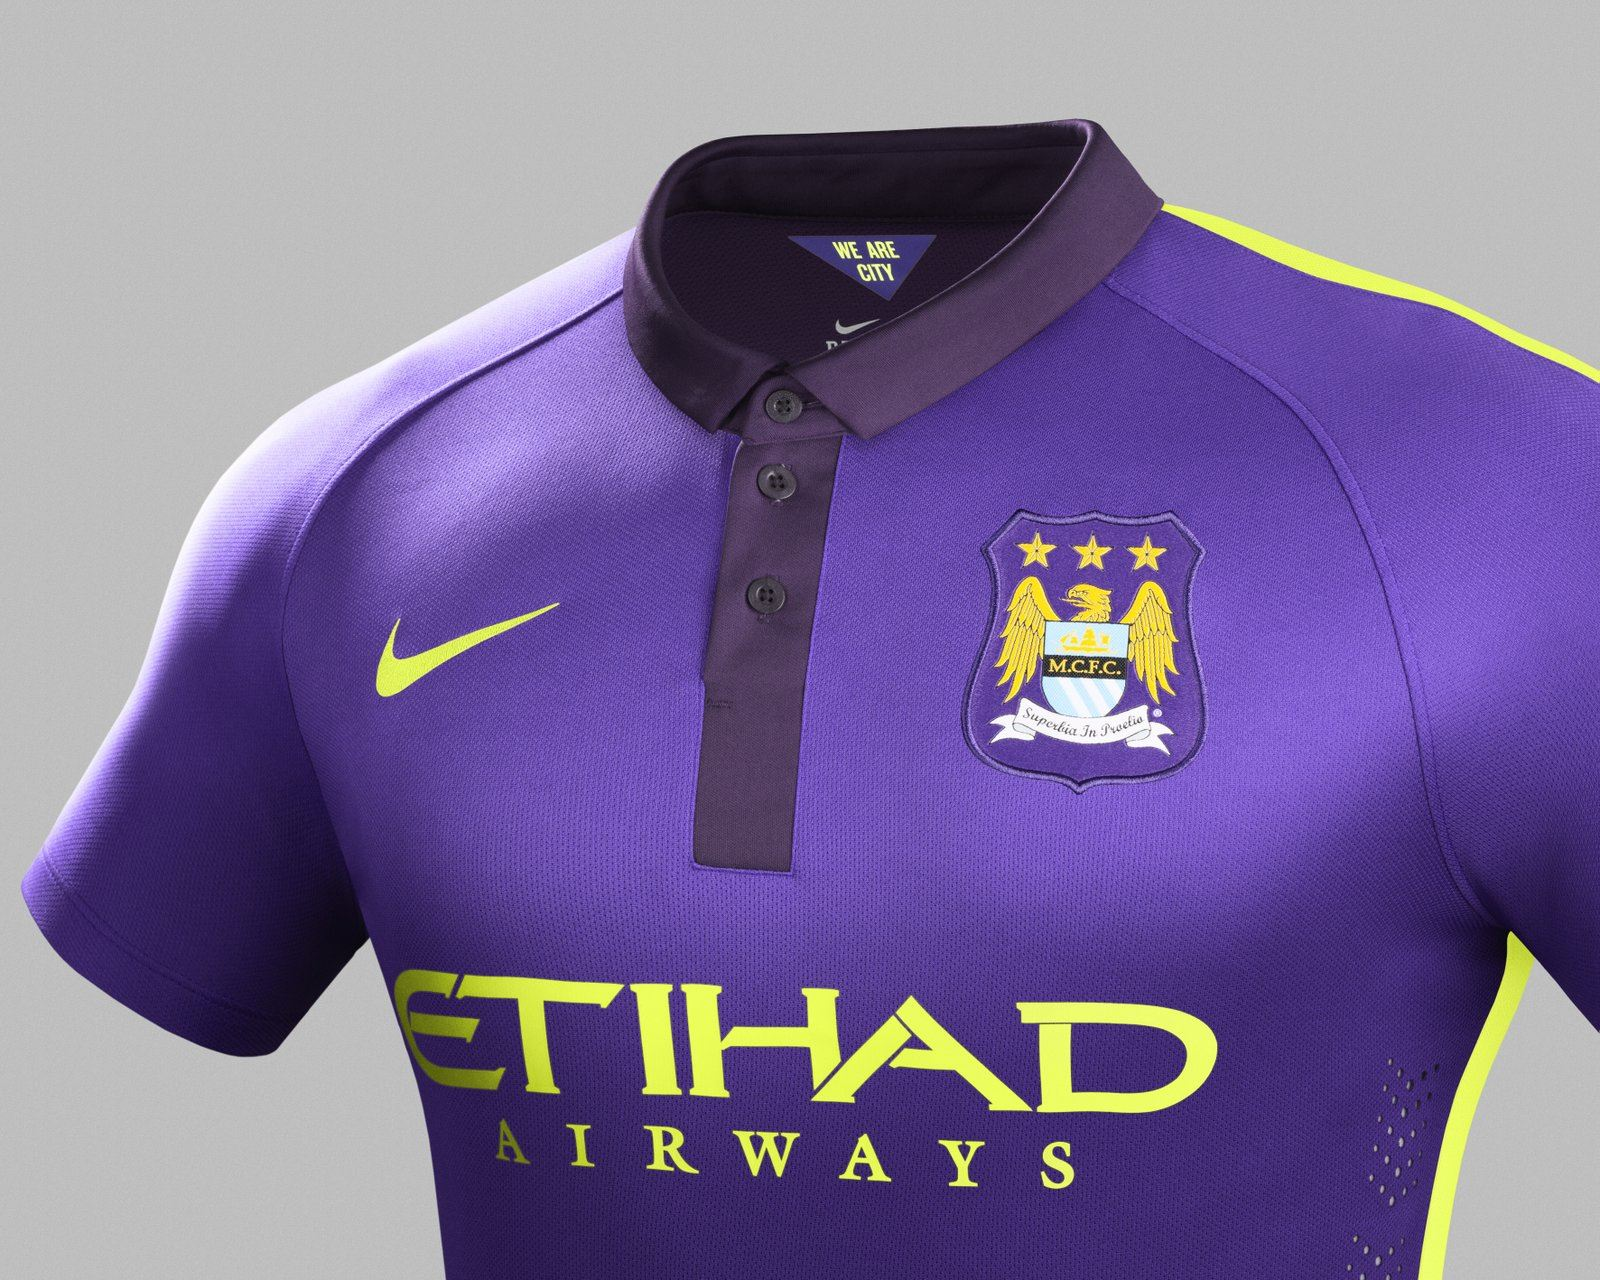 Purple patch - Will City's performance in Munich match their snazzy new Cup kit? Courtesy@MCFC